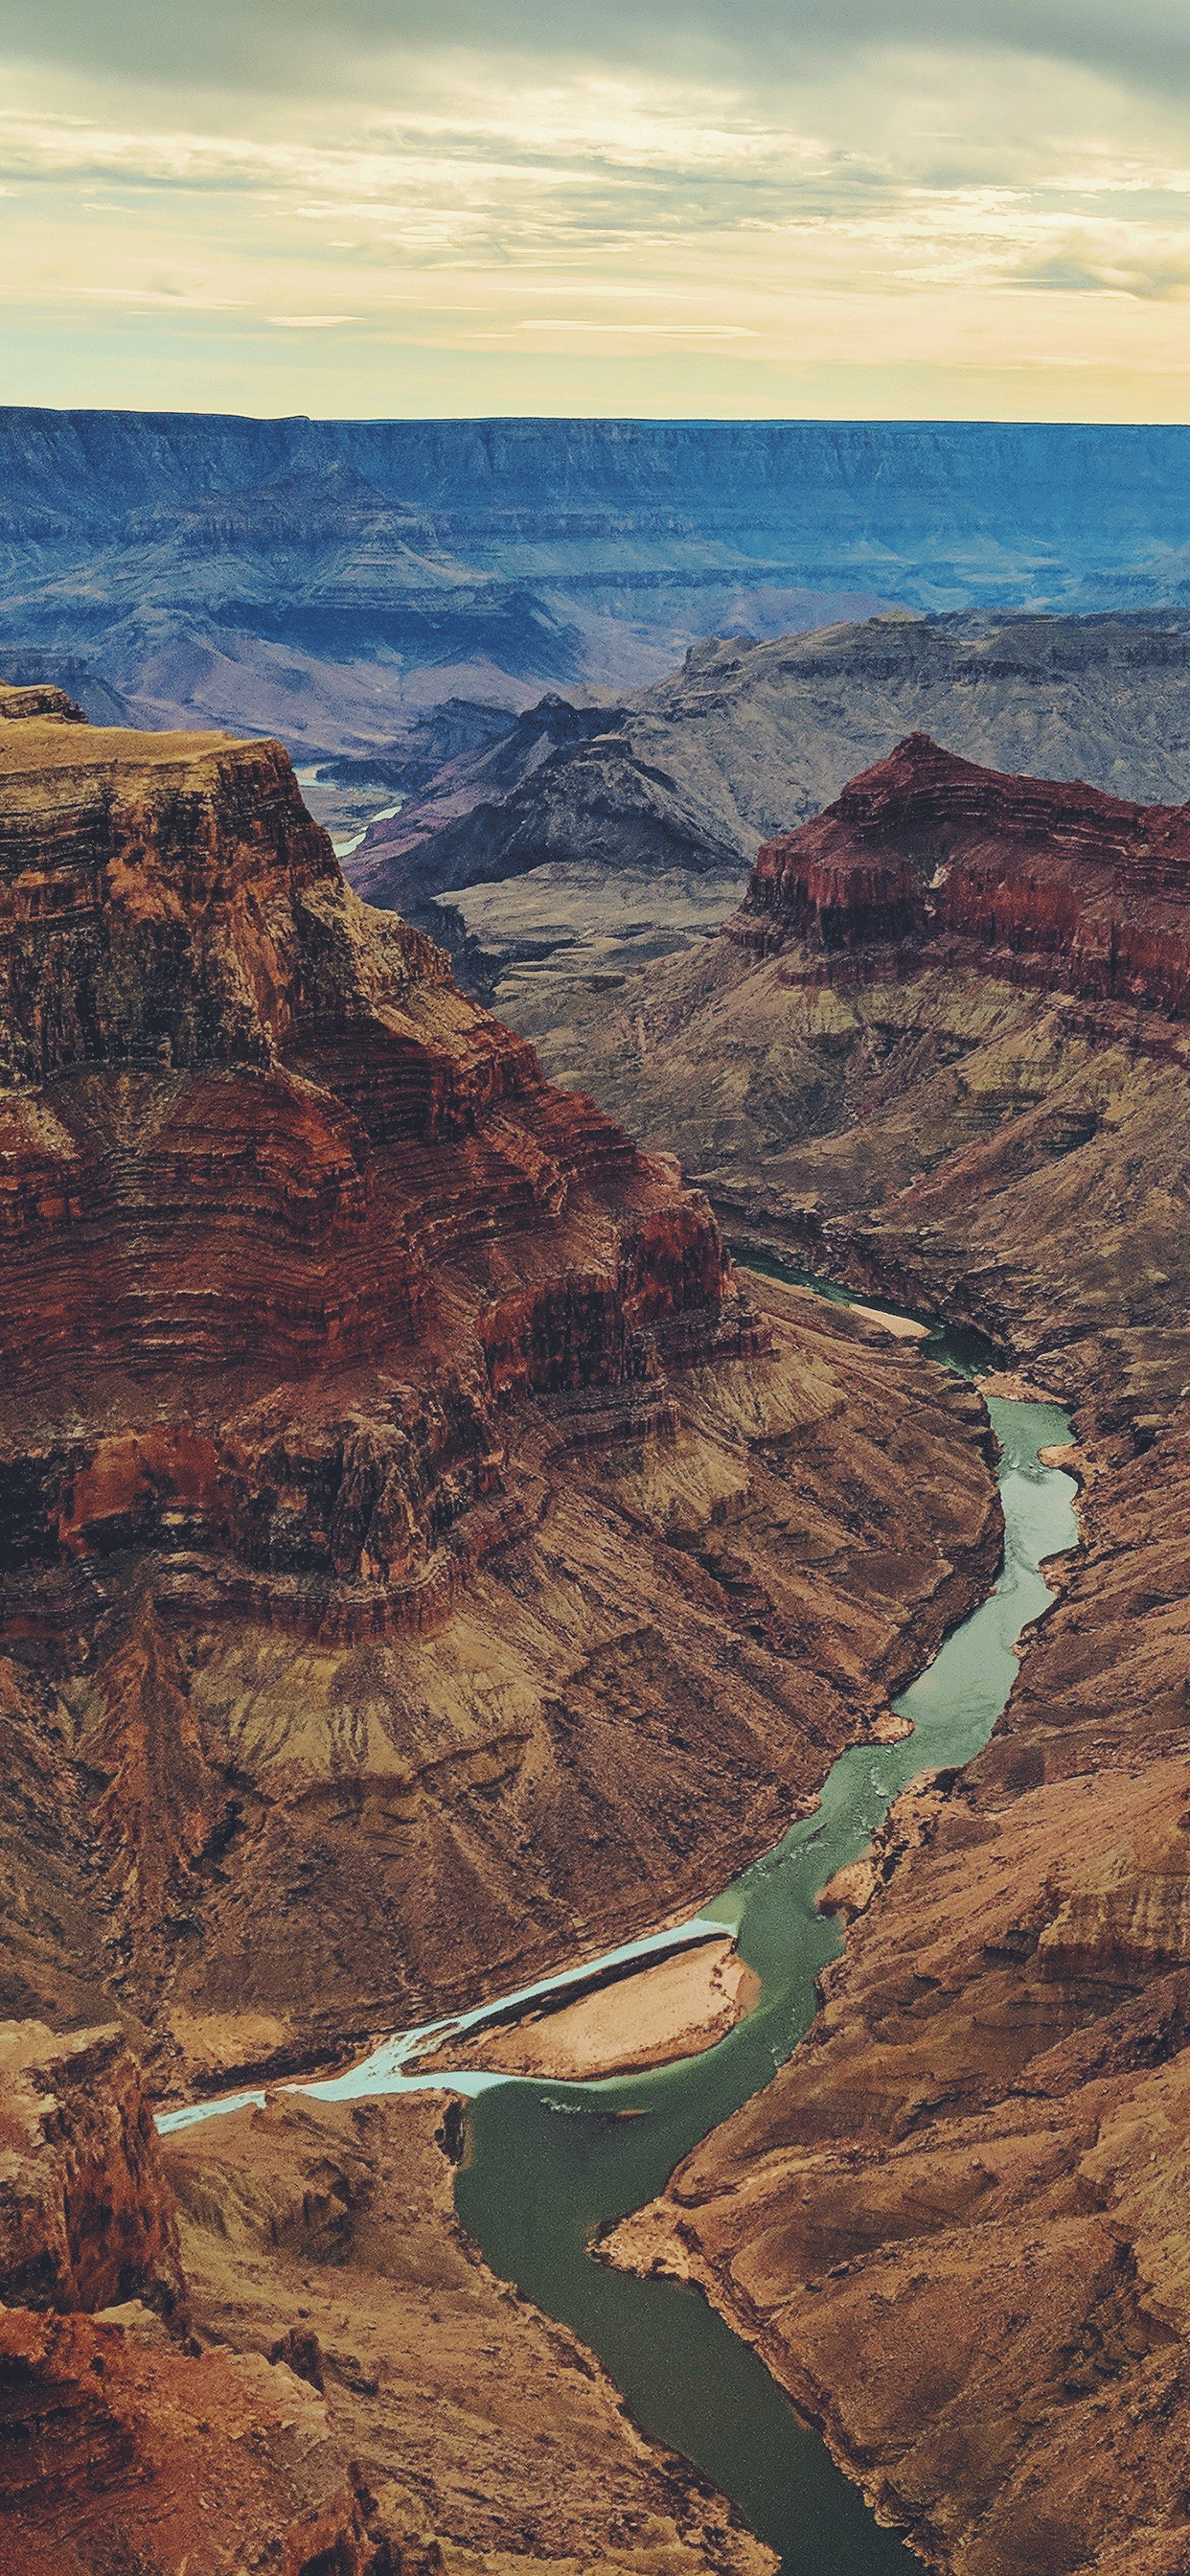 iPhone wallpaper grand canyon river Fonds d'écran iPhone du 13/11/2018